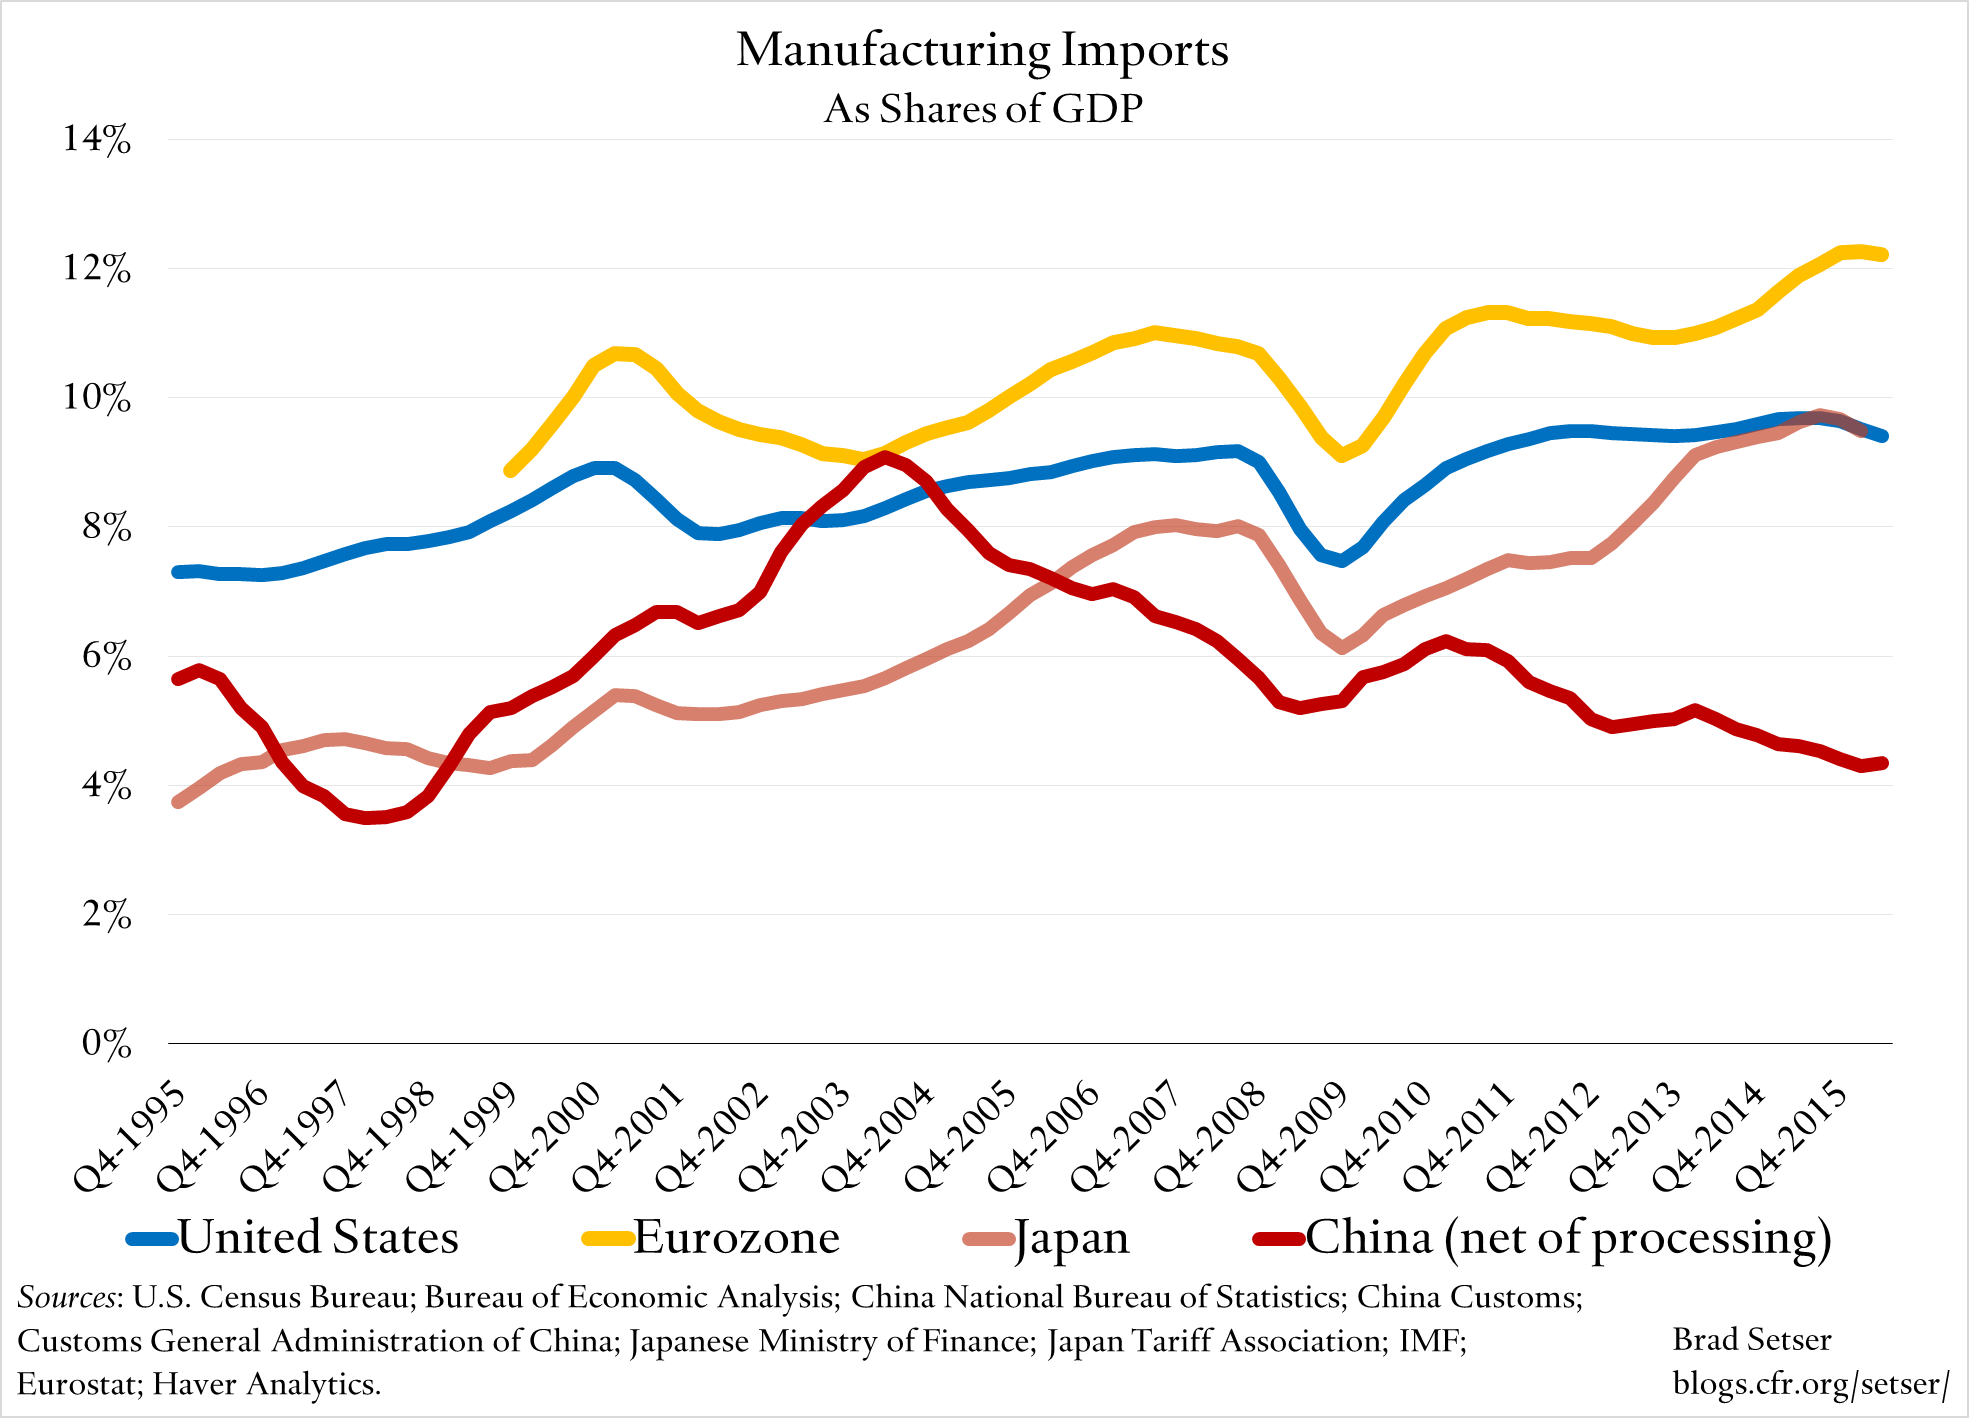 manufacturing-imports-gdp-share